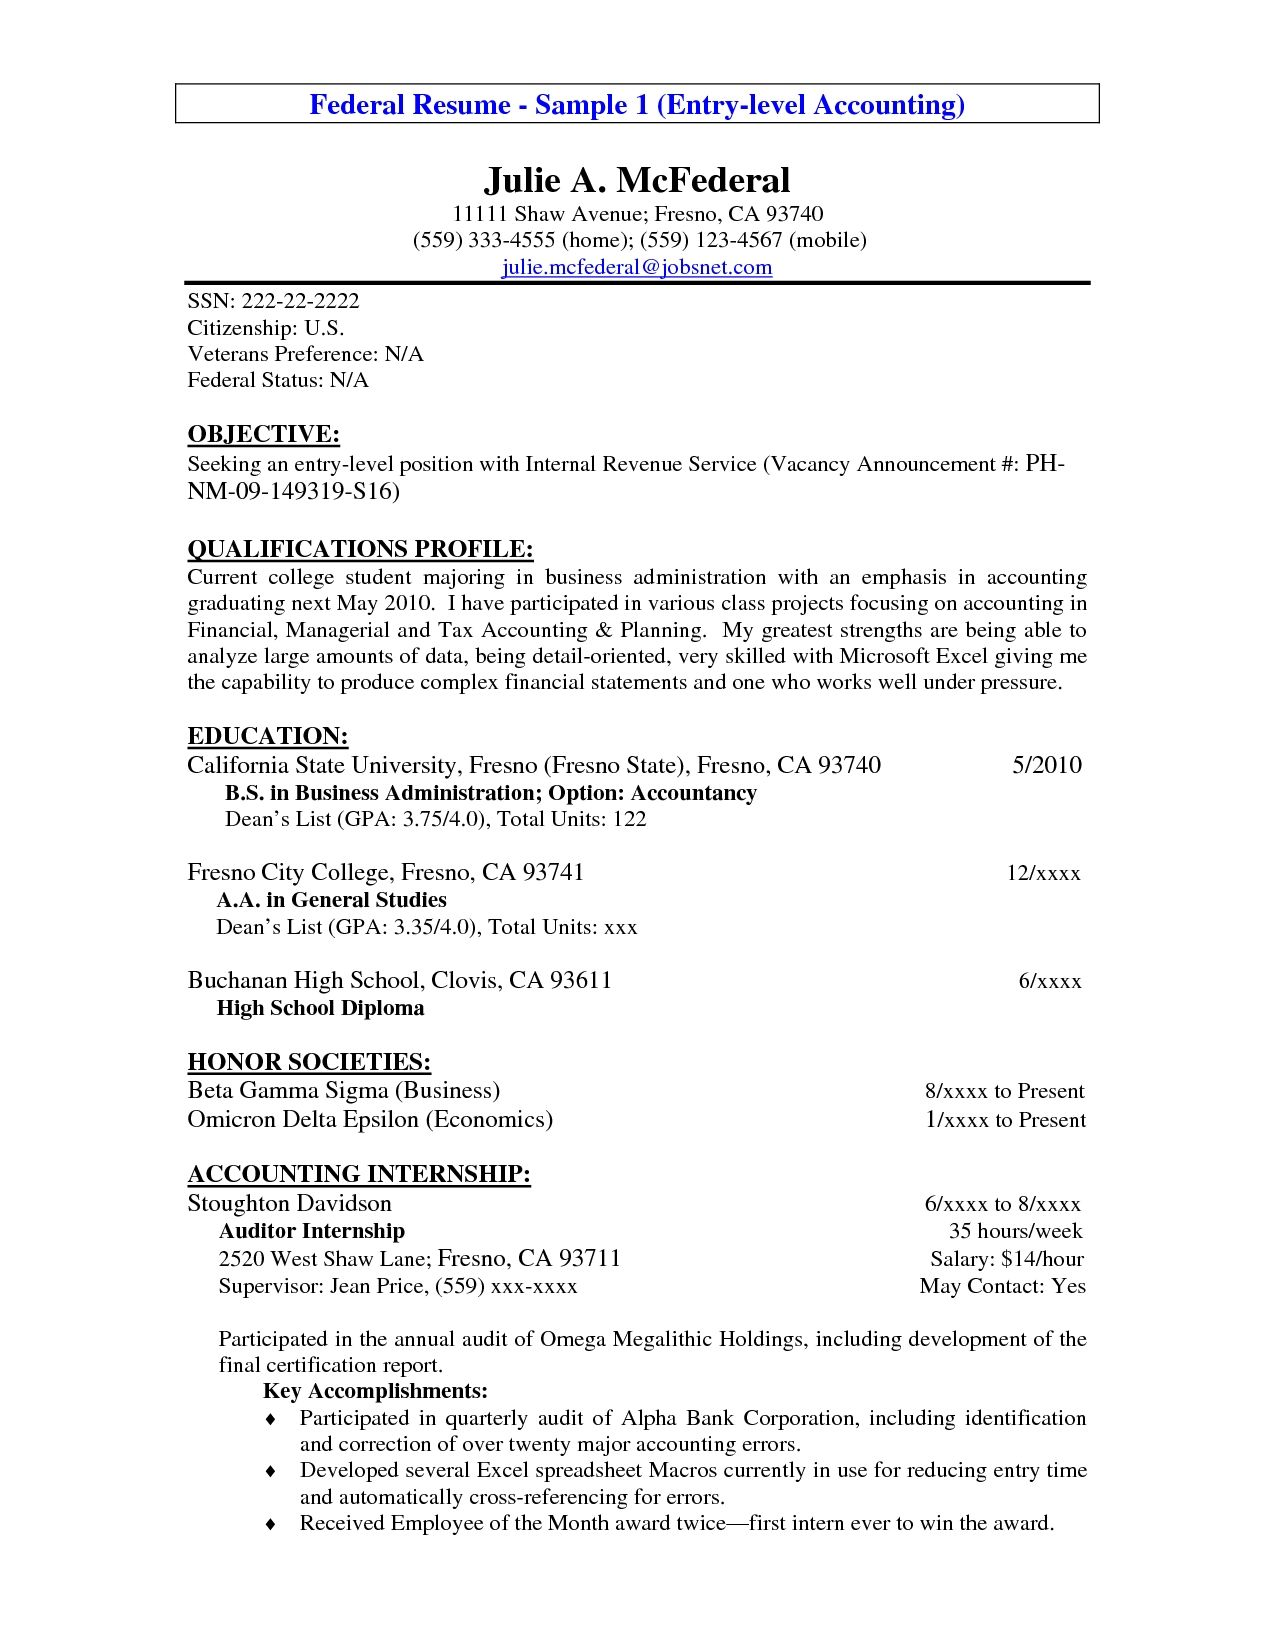 Entry Level Resume Template Entry Level Resume Example Entry Level Accounting Resume Sample